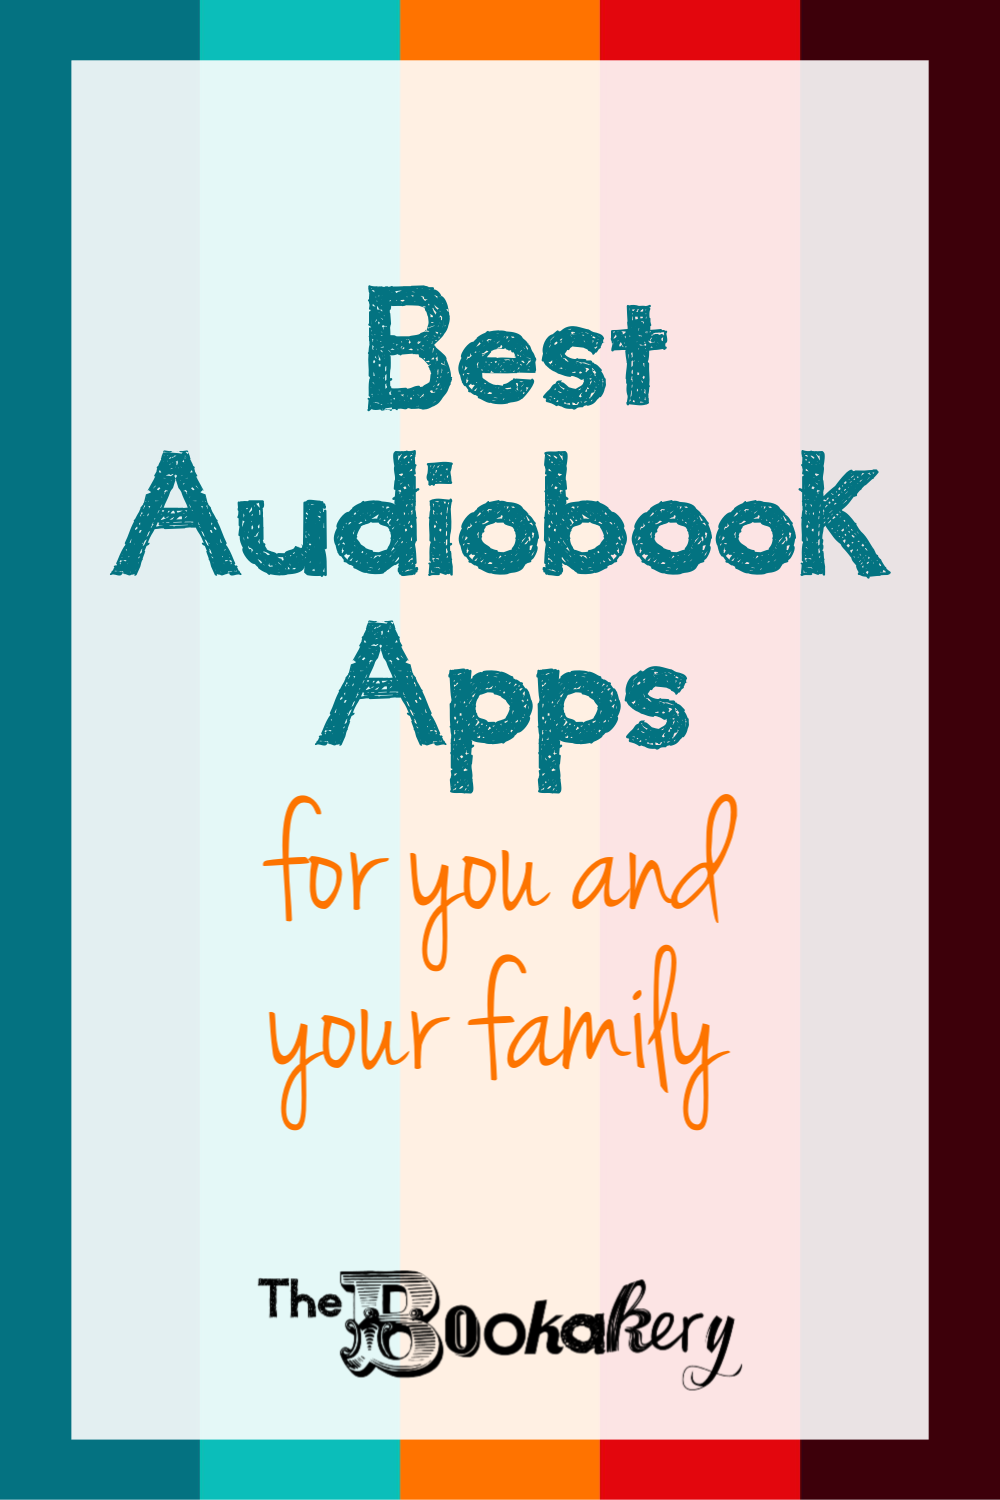 Best Audiobook Apps for you and your family Audio books